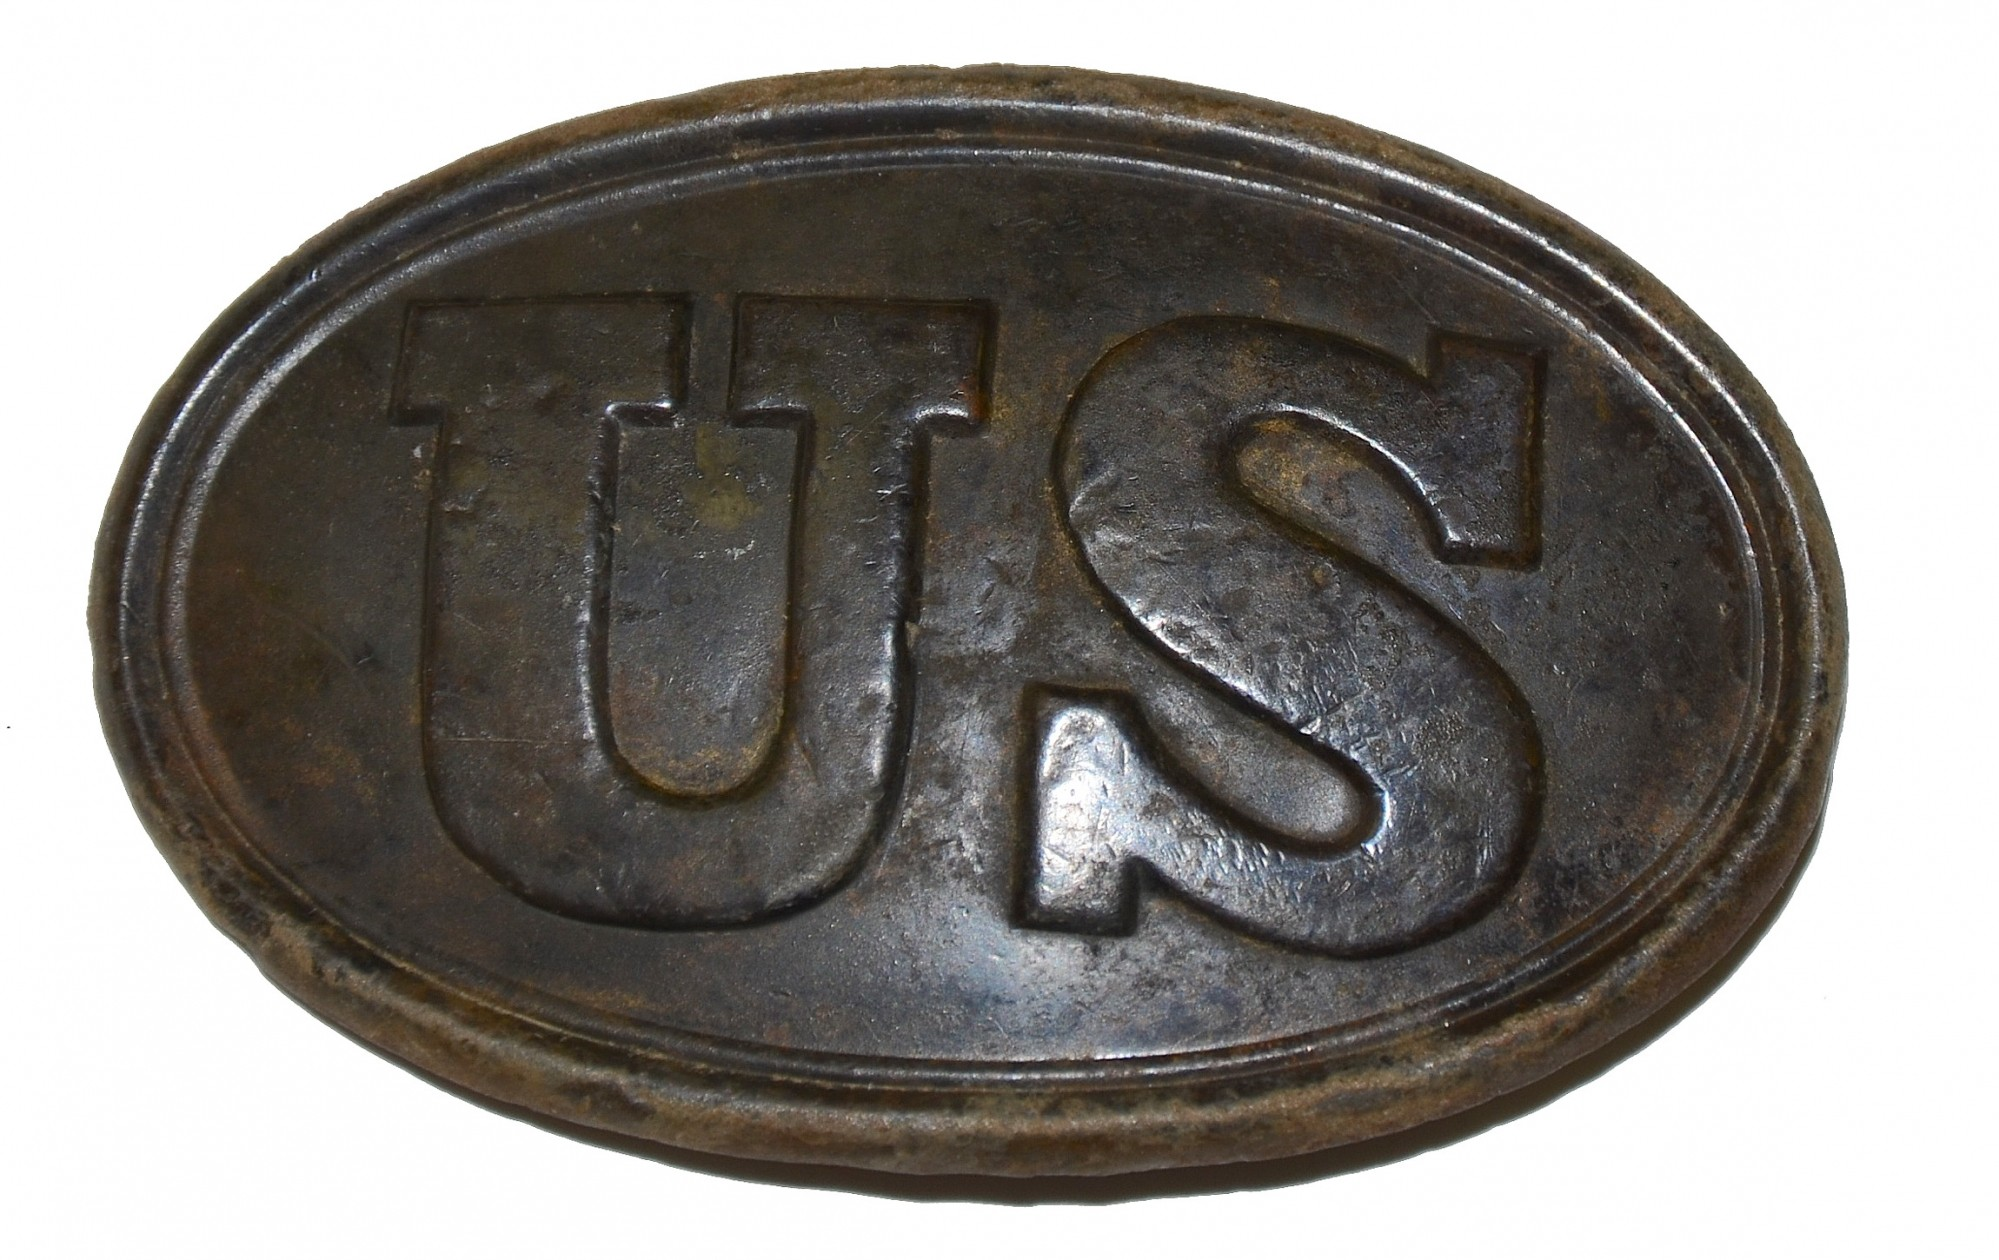 US PATTERN 1939 BELT PLATE DUG BY SID KERKSIS – NORTH ANNA